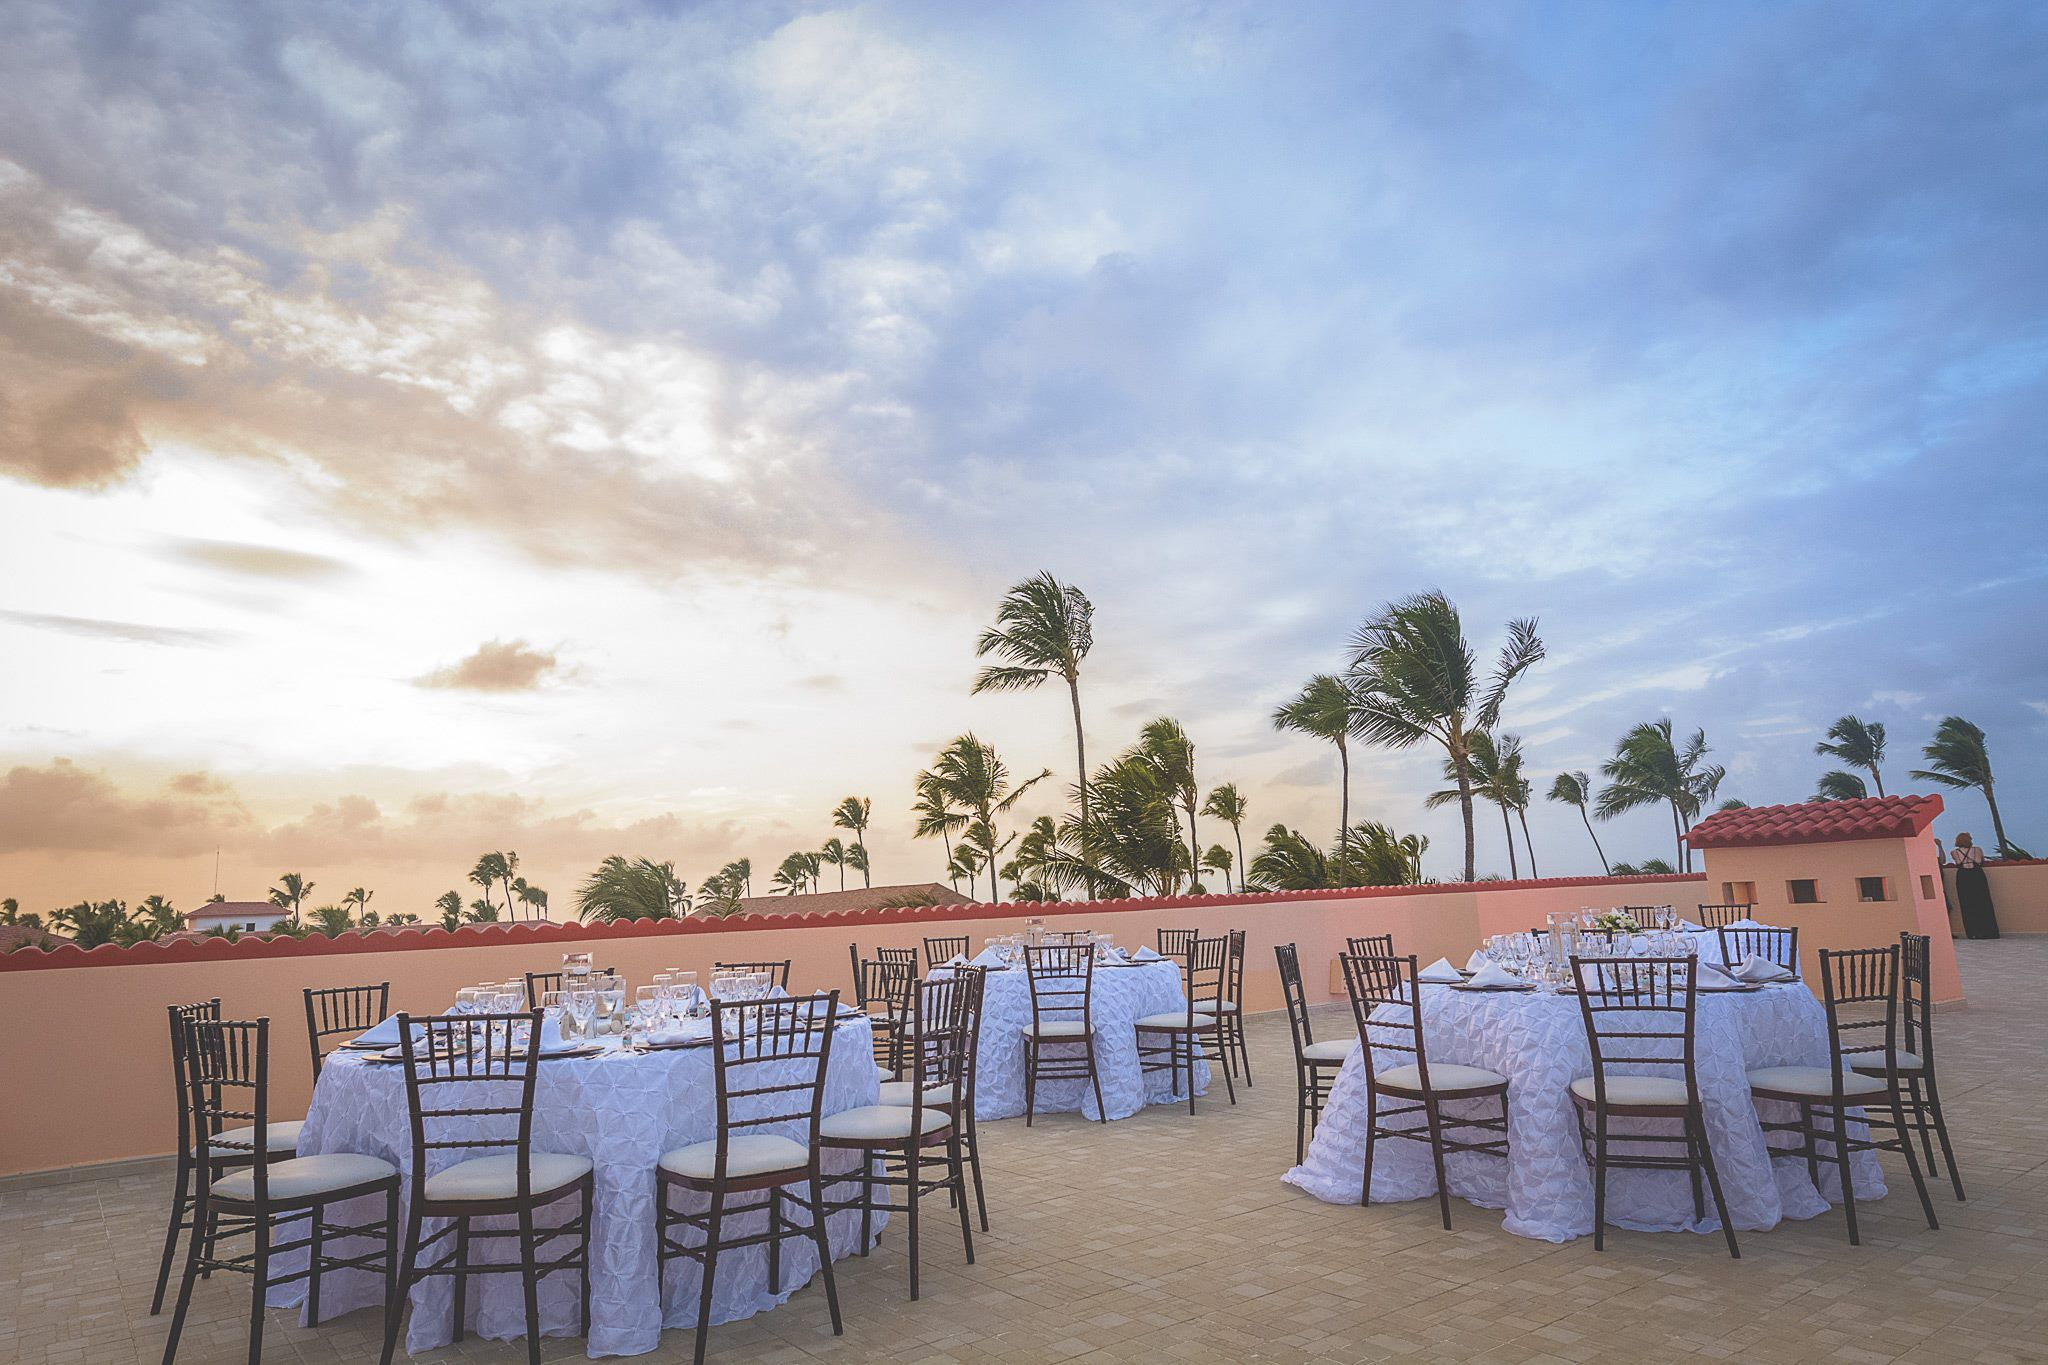 Presidential Suite wedding reception setup at Majestic Colonial